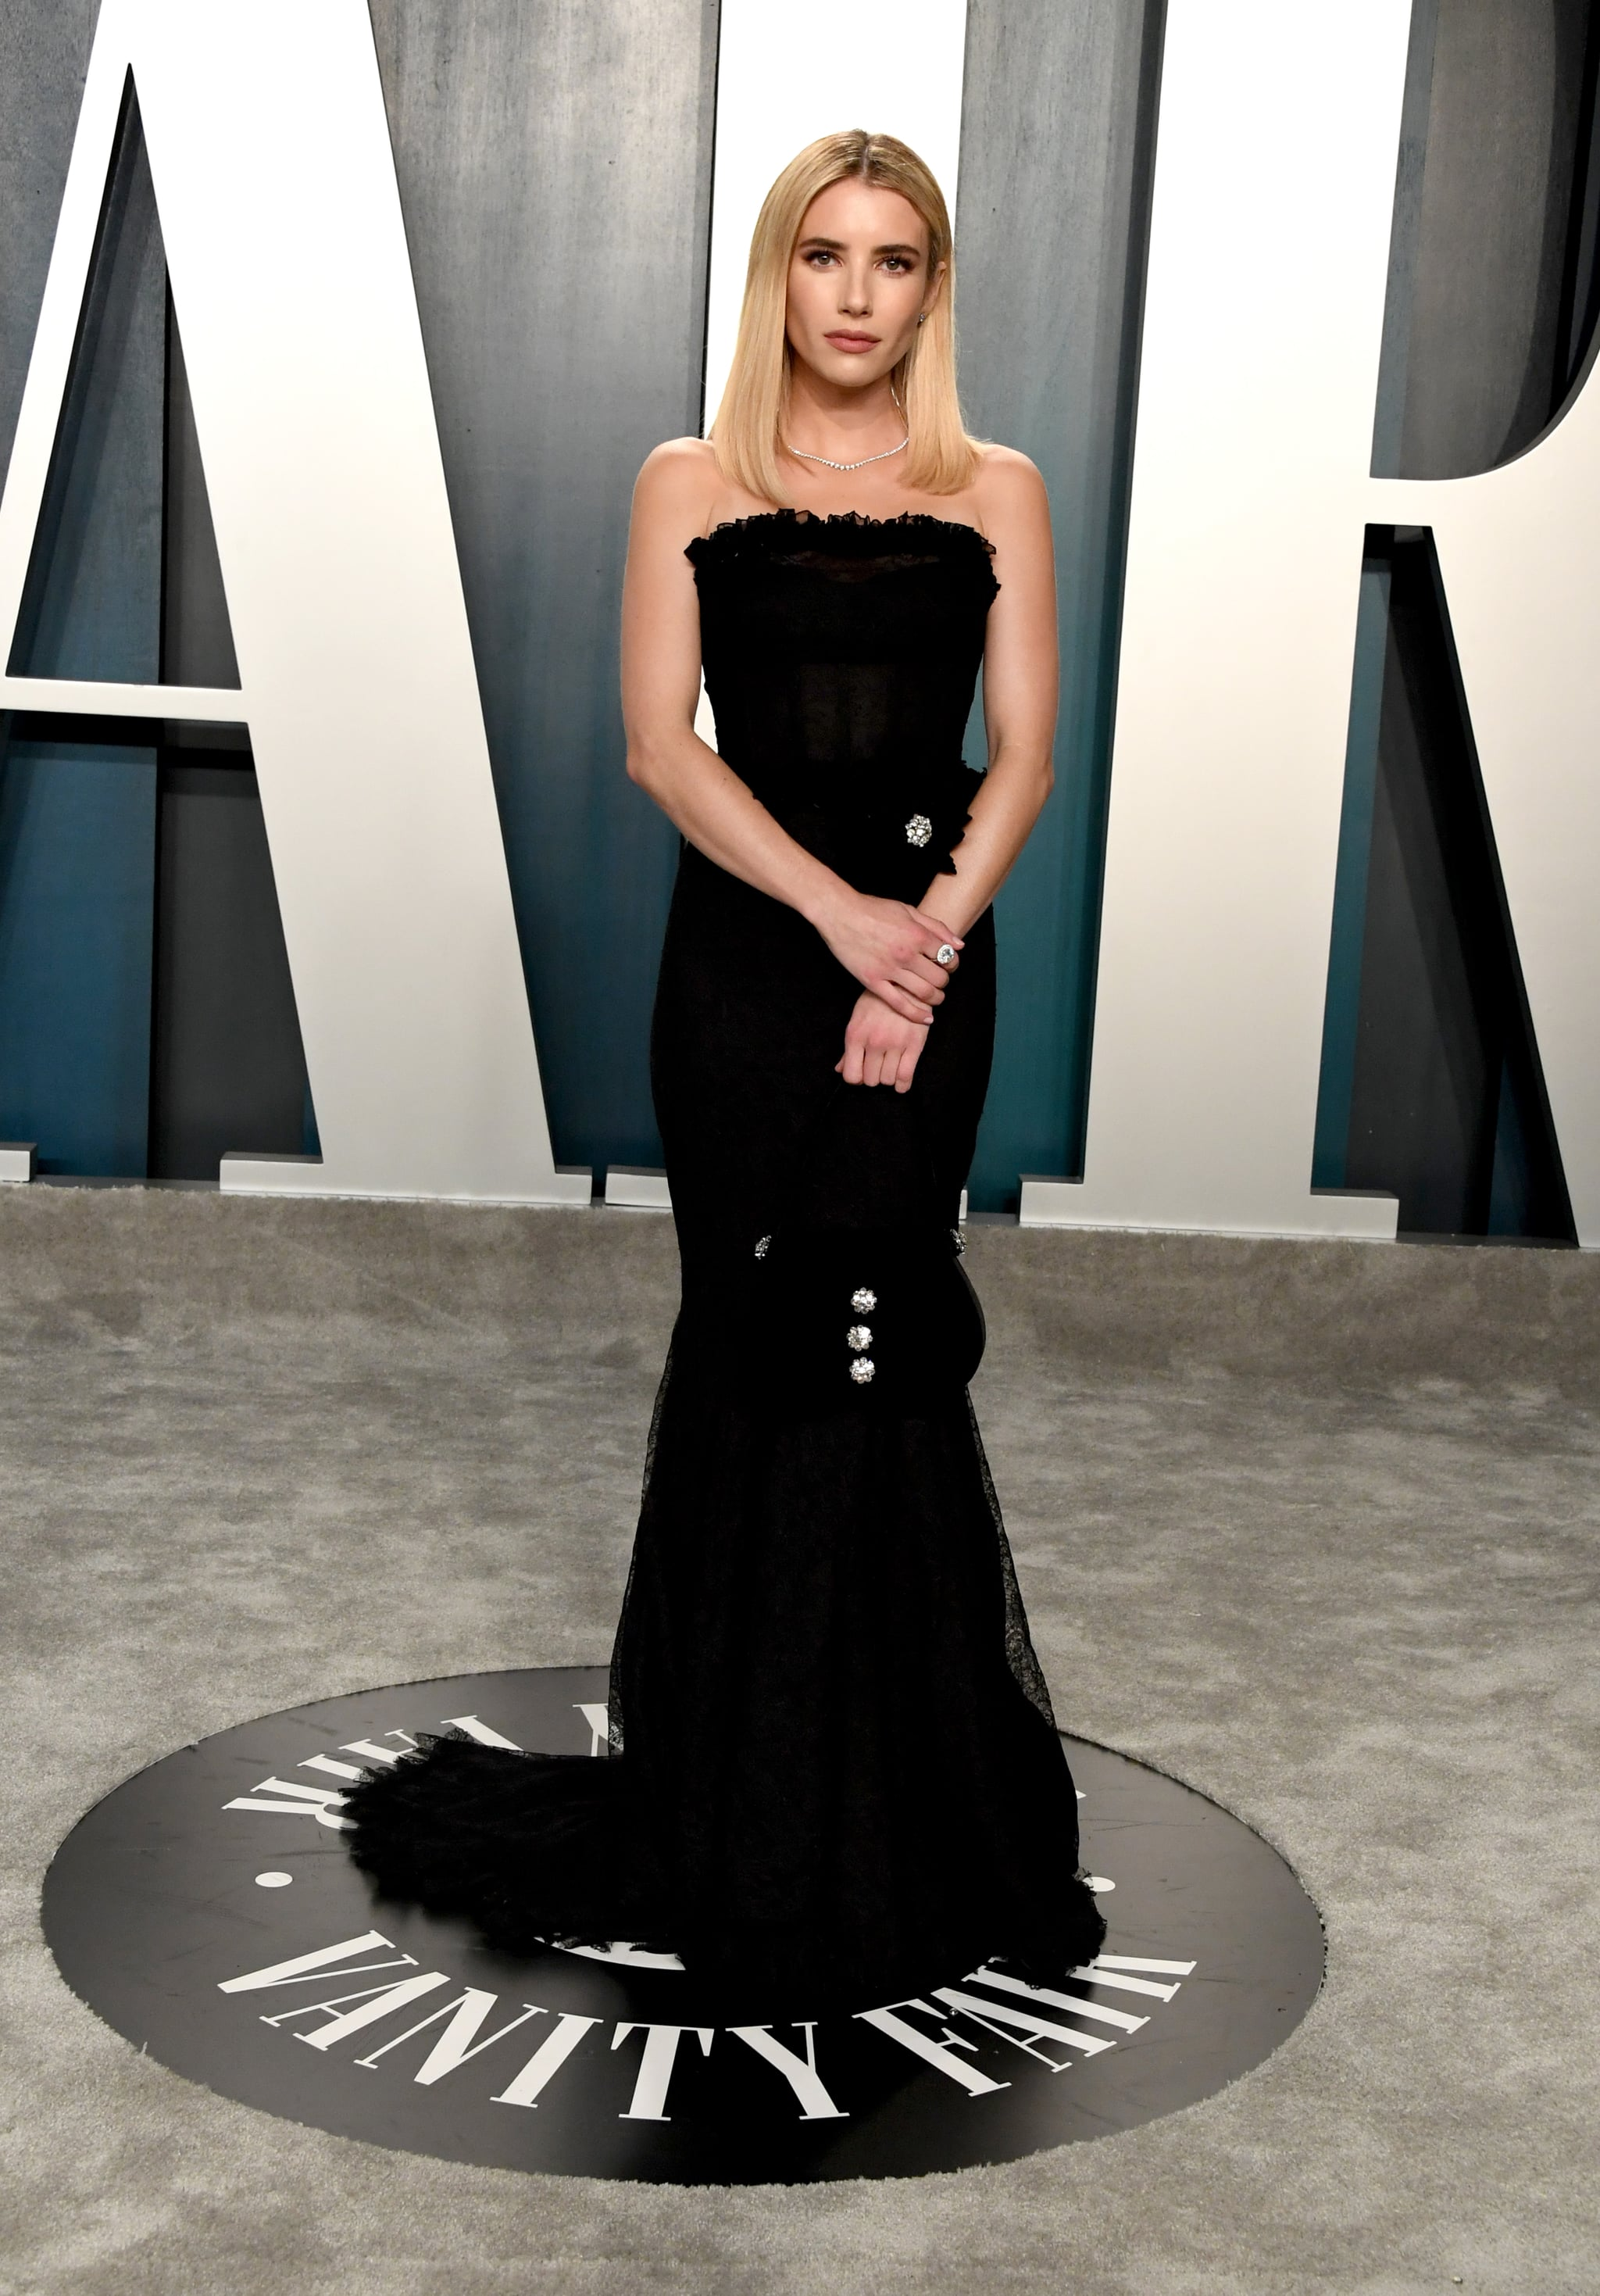 Emma Roberts At The Vanity Fair Oscars Afterparty 2020 The Glamour Continues These Oscars Afterparty Dresses Will Leave You In Awe Popsugar Fashion Photo 32